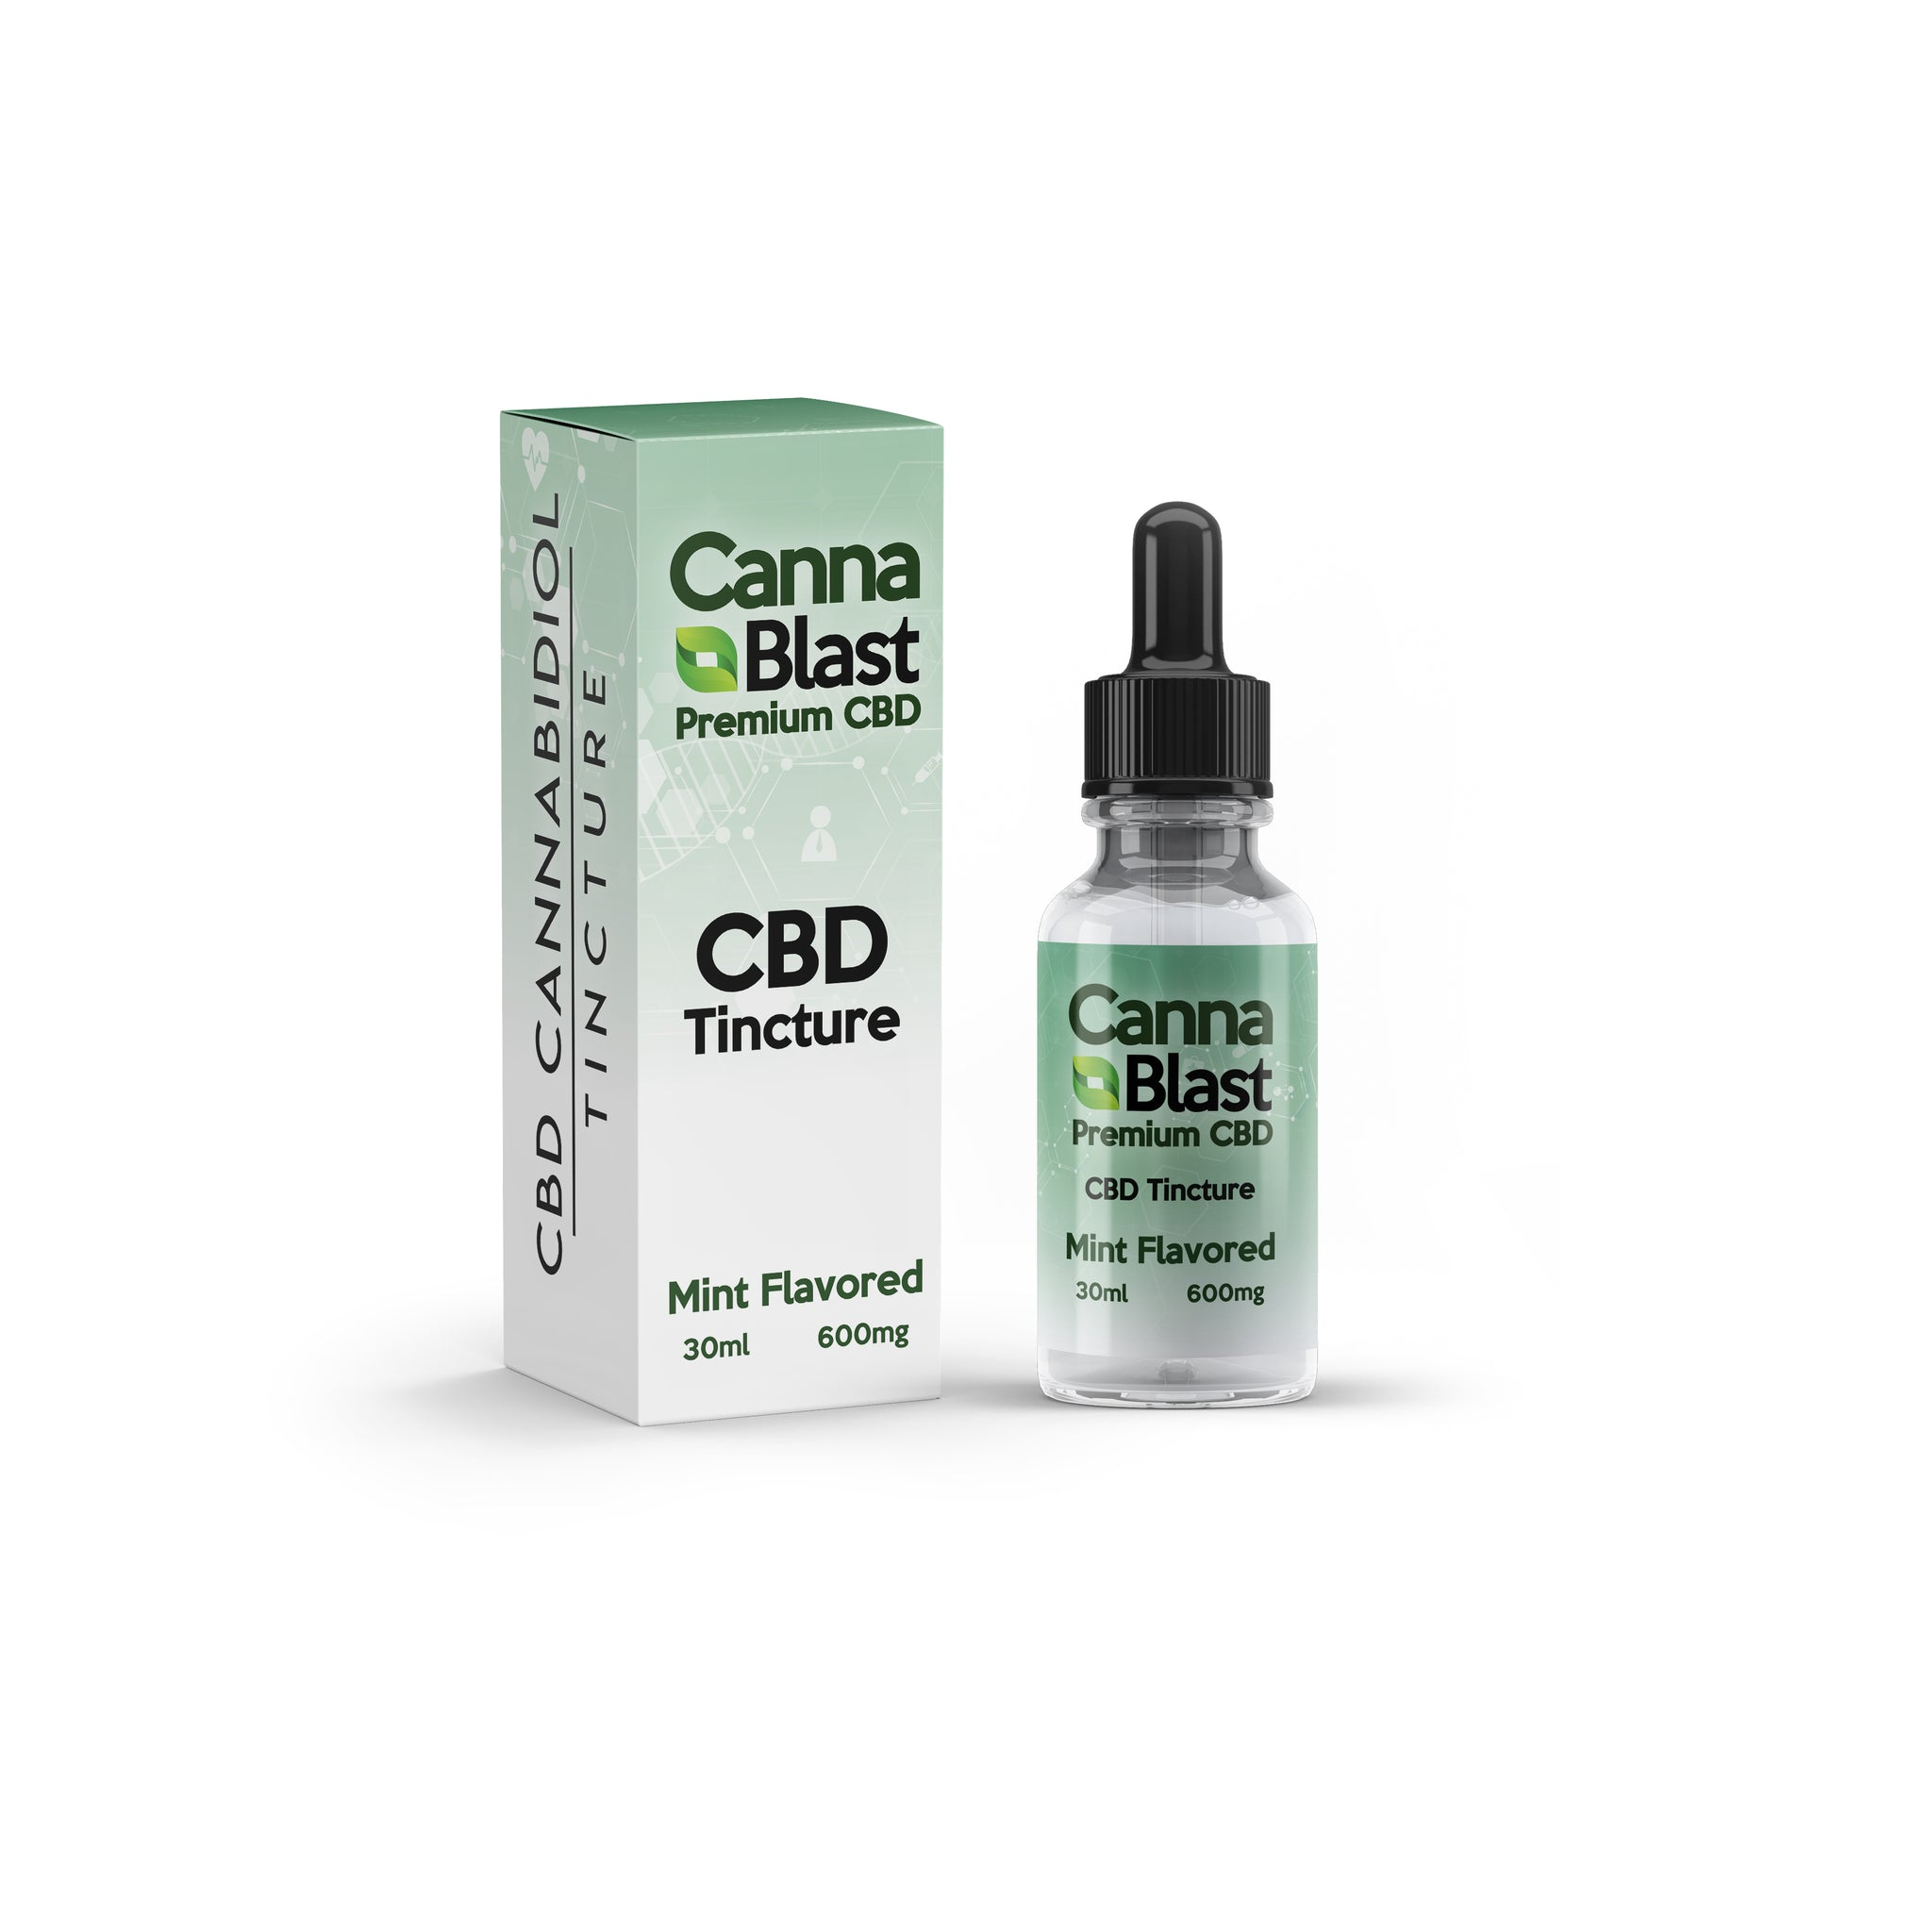 30ml Cannablast Premium CBD Tinctures (Mint Flavor)